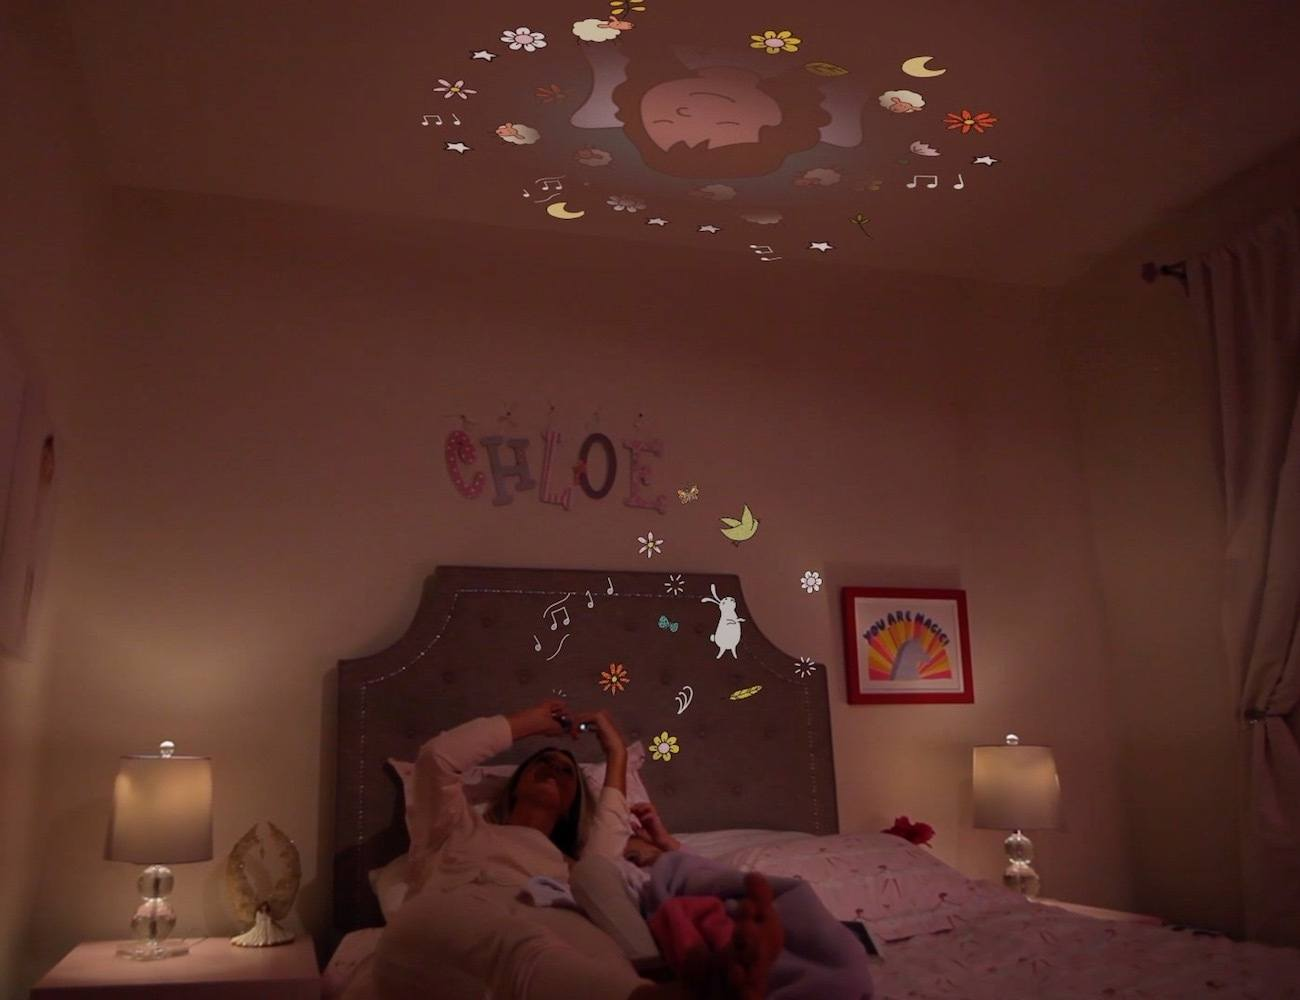 Moonlite – Bedtime Story Projector for Your Mobile Phone